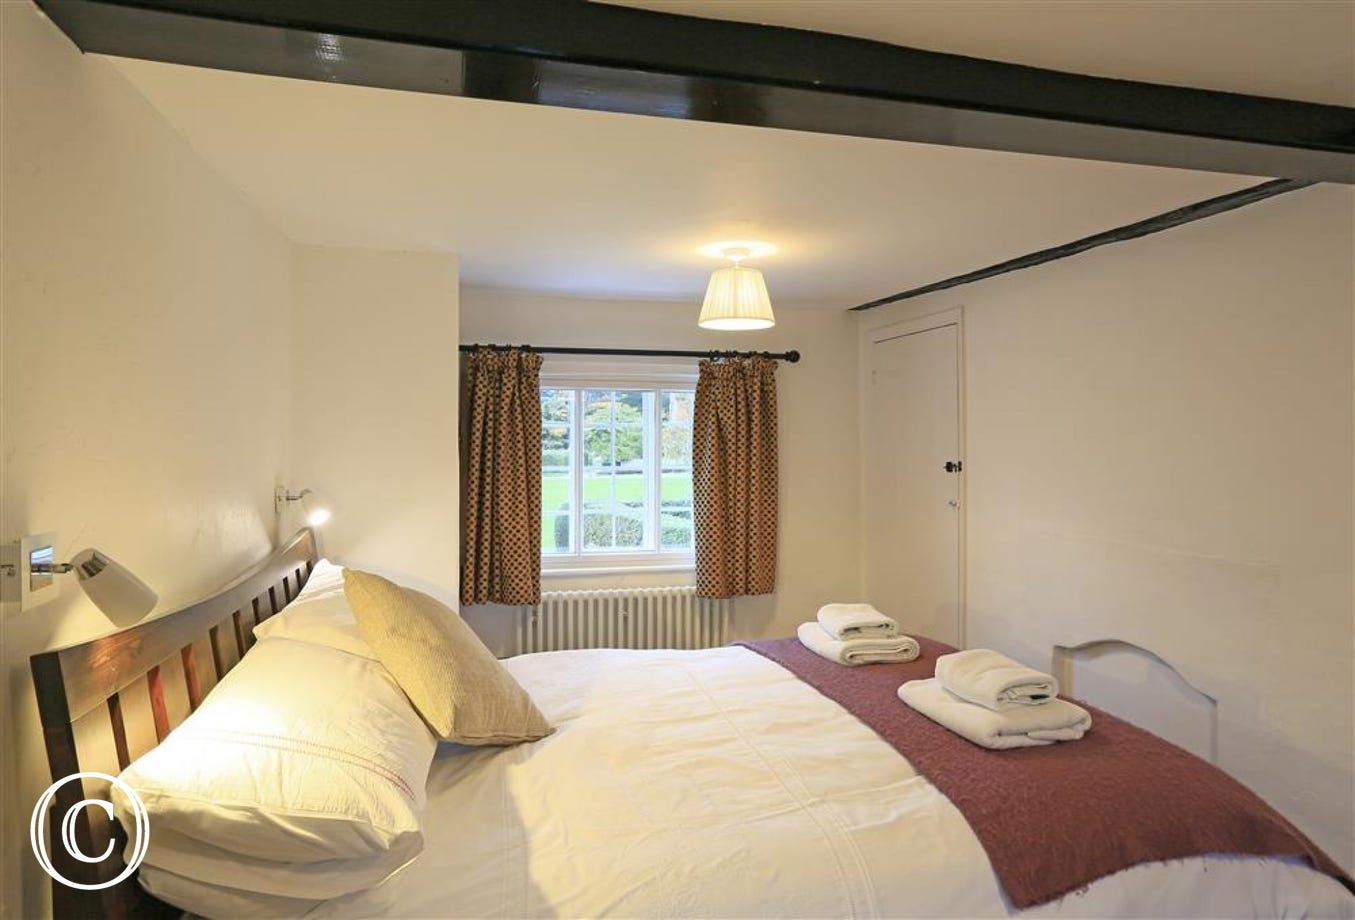 With beams throughout the property, this bedroom has a wonderful cosy feel.